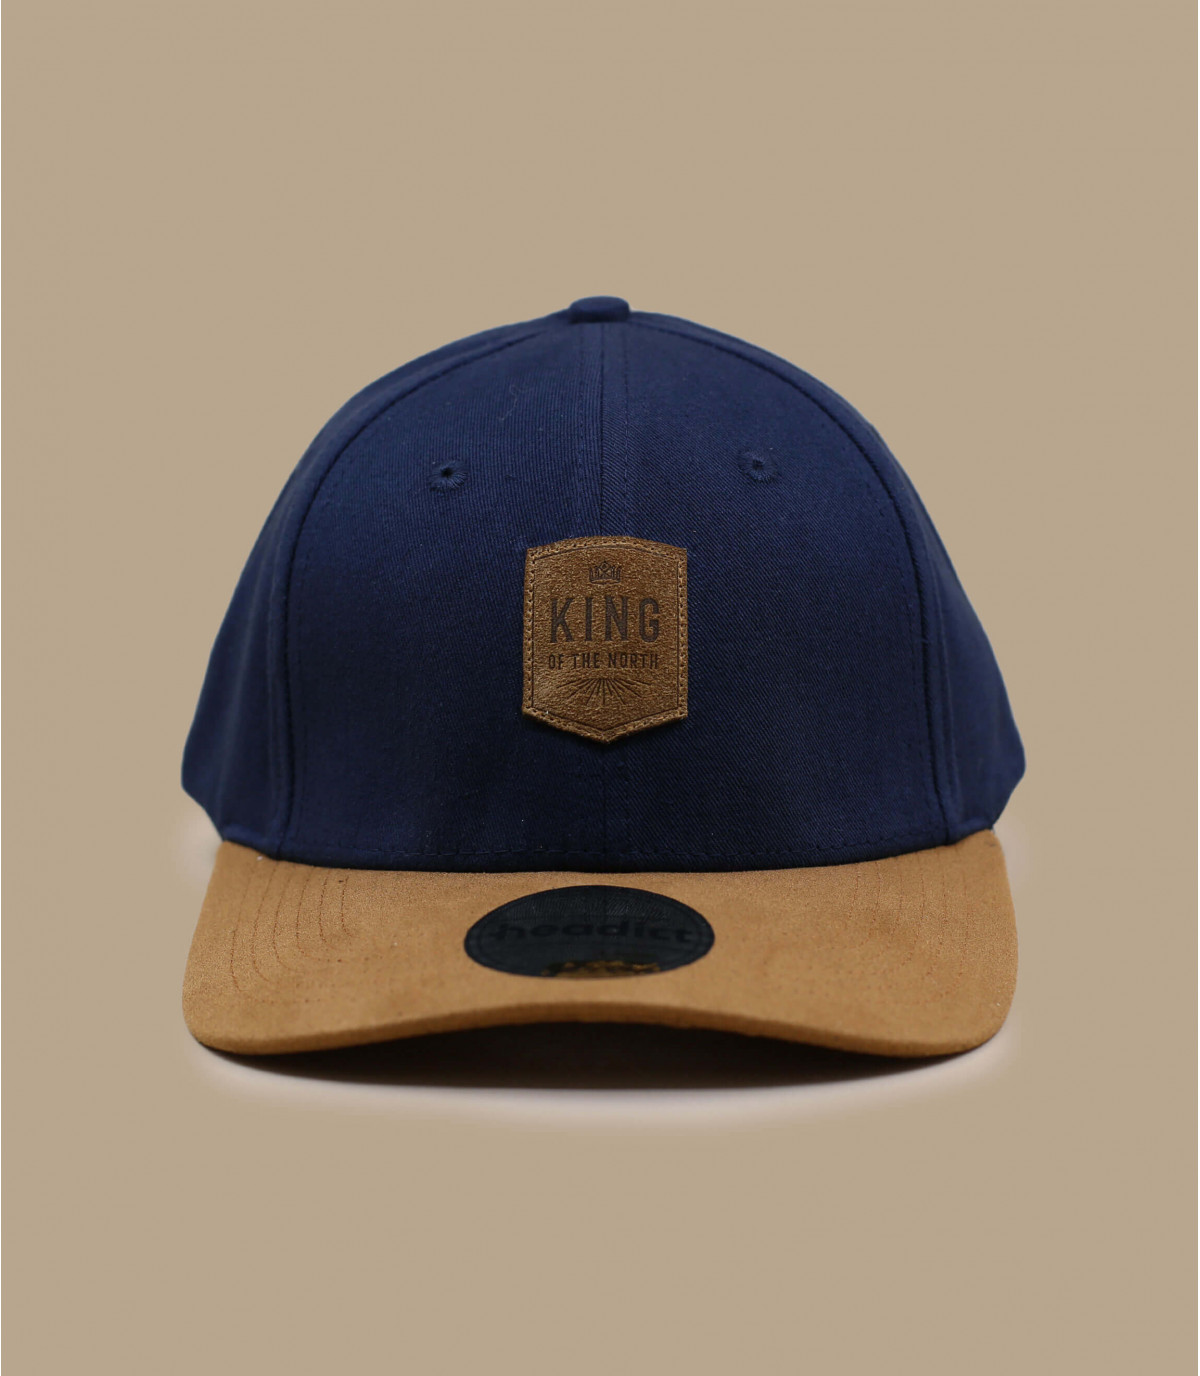 Details Curve King of the North navy brown - Abbildung 1